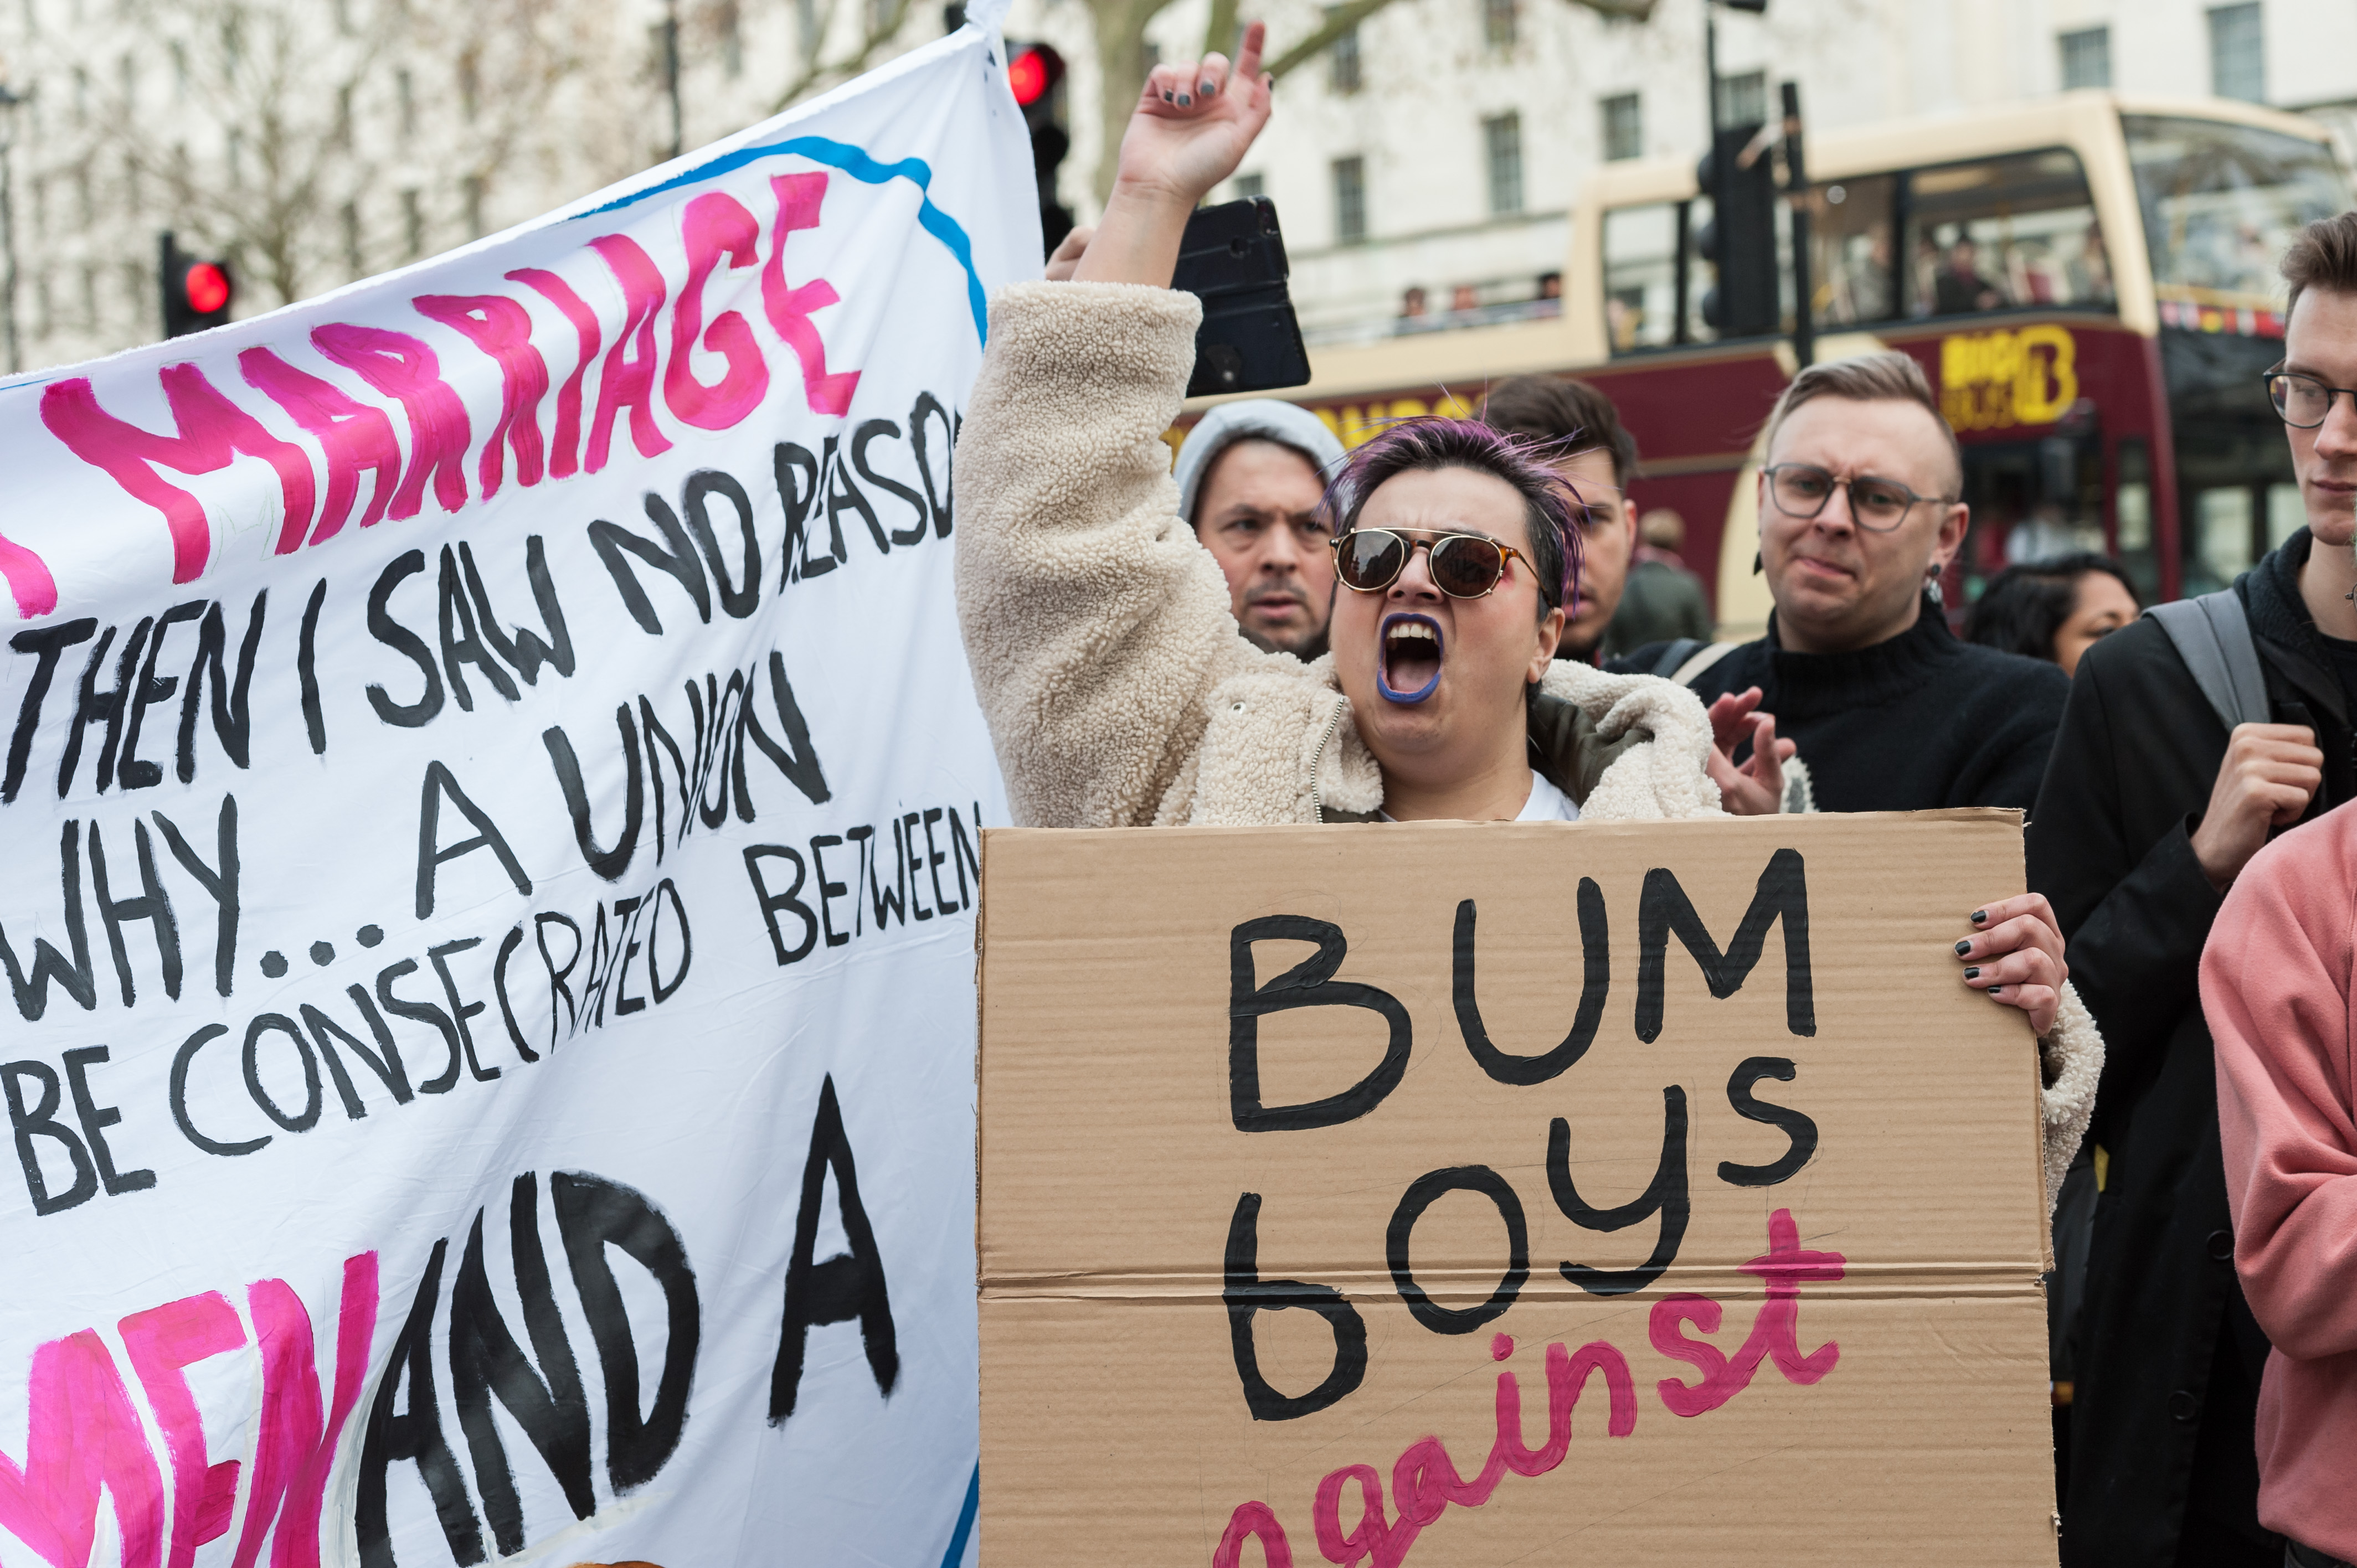 Protesters held a 'bum boys against Boris Johnson' protest outside Downing Street